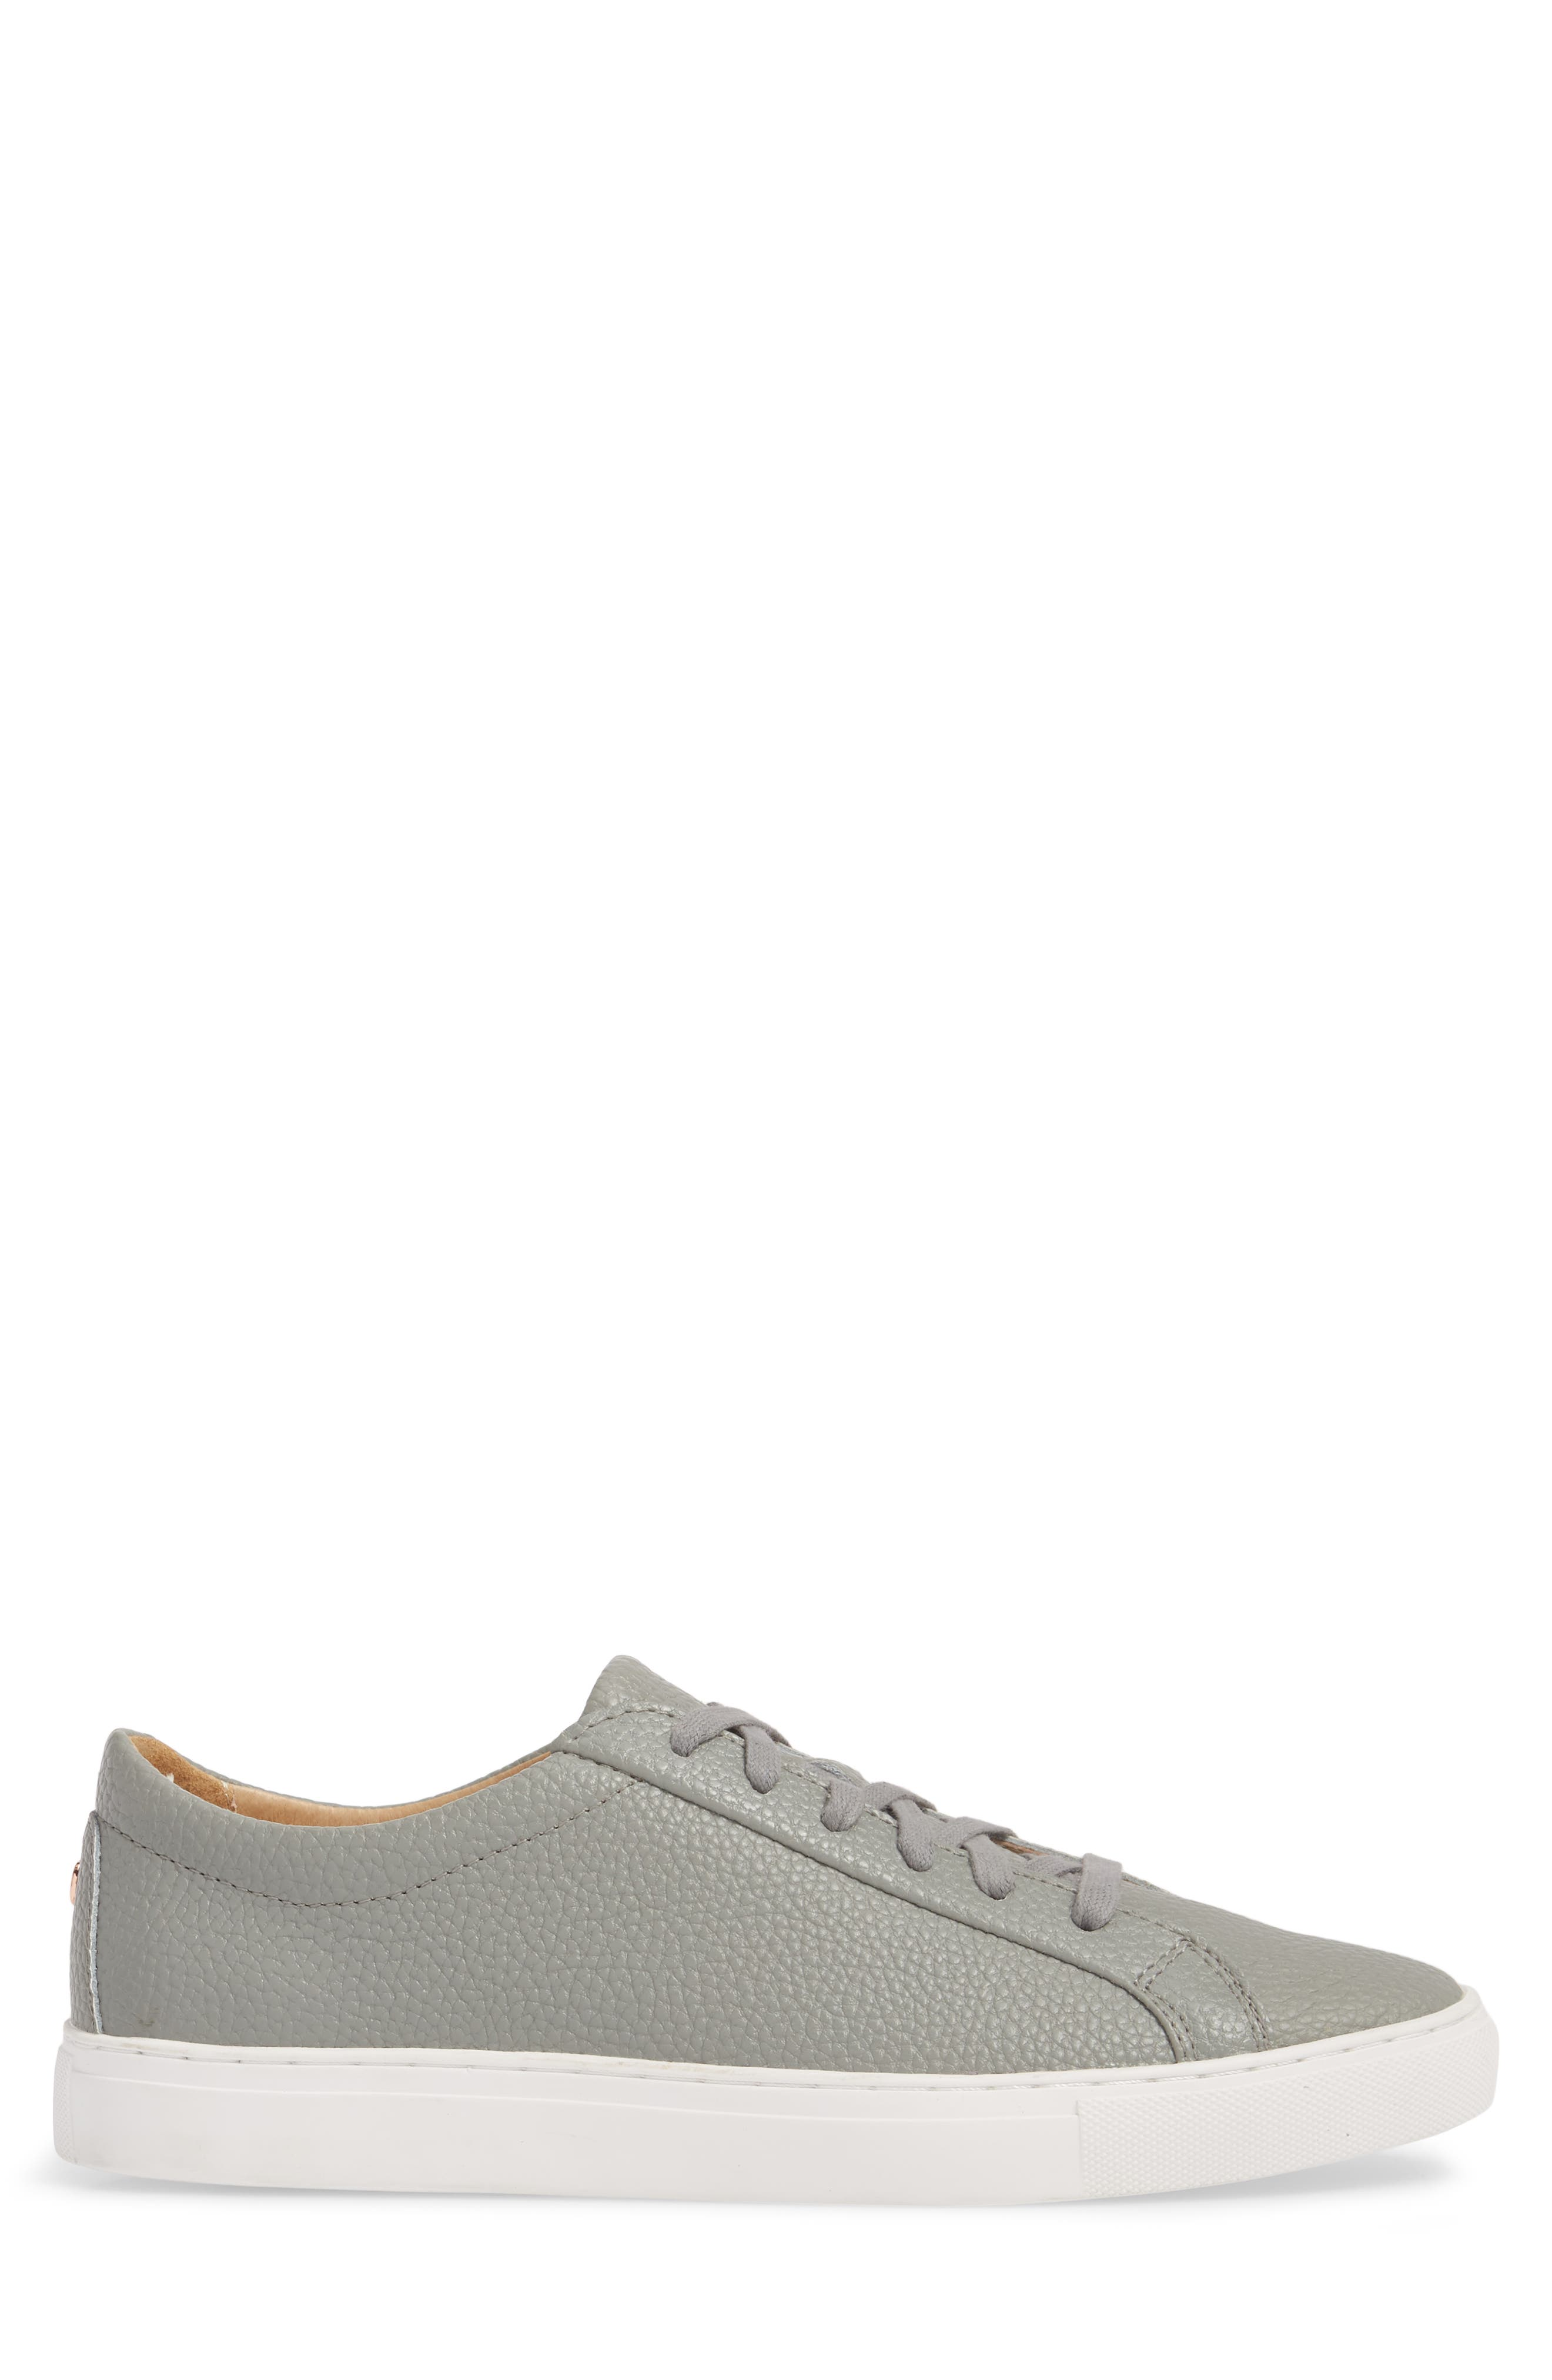 Kennedy Low Top Sneaker,                             Alternate thumbnail 3, color,                             RIVER ROCK LEATHER